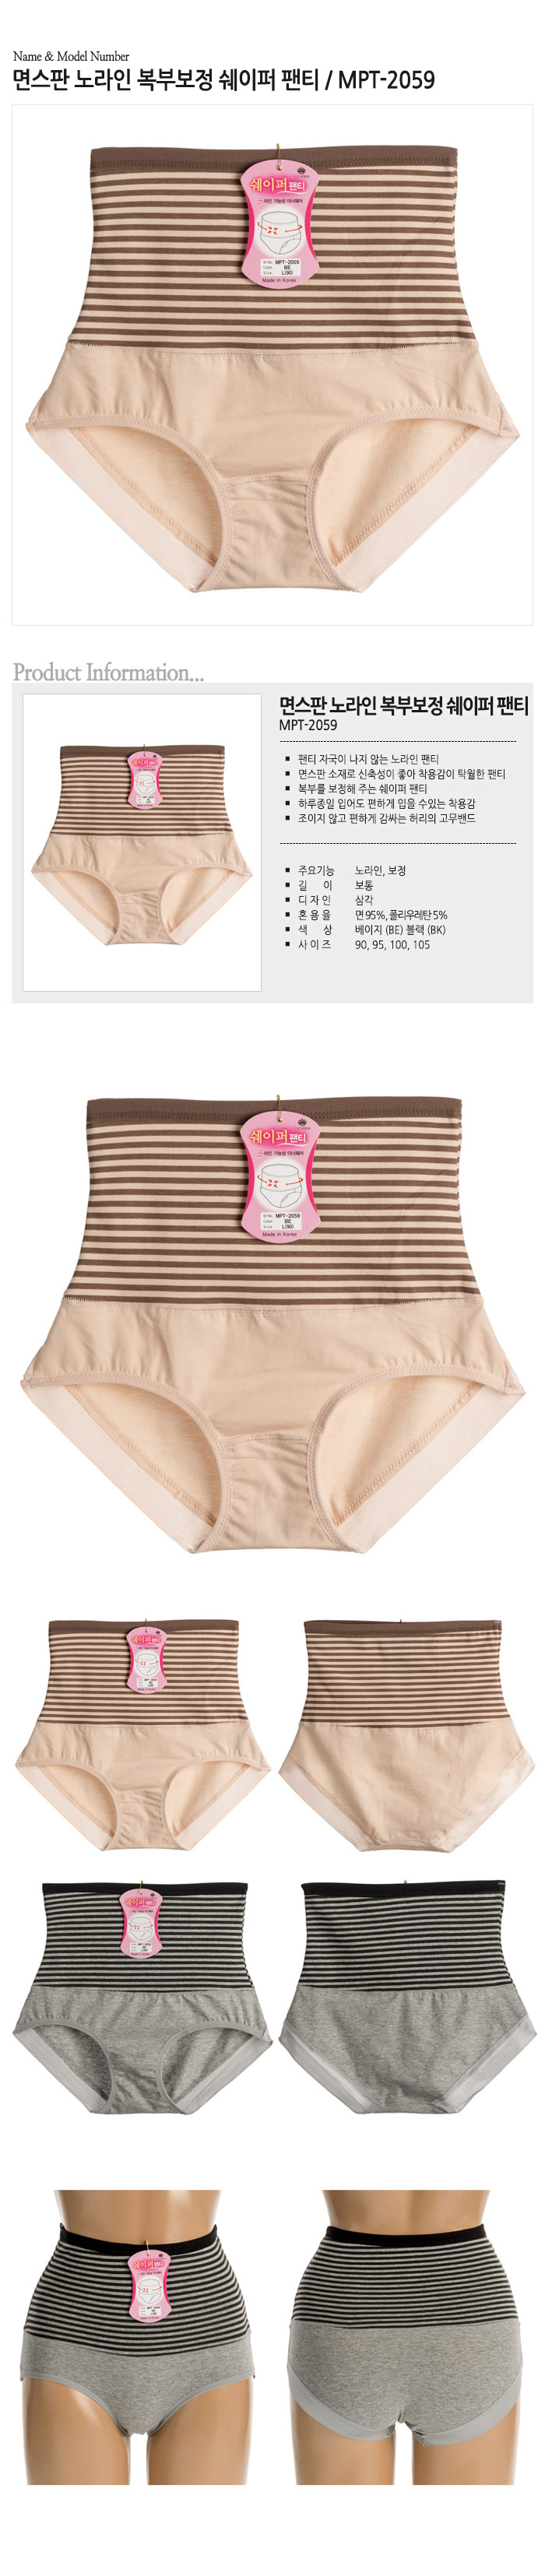 New Made in Korea High Waist Body Shaper Abdominal Curl No Line Panties MPT-2059